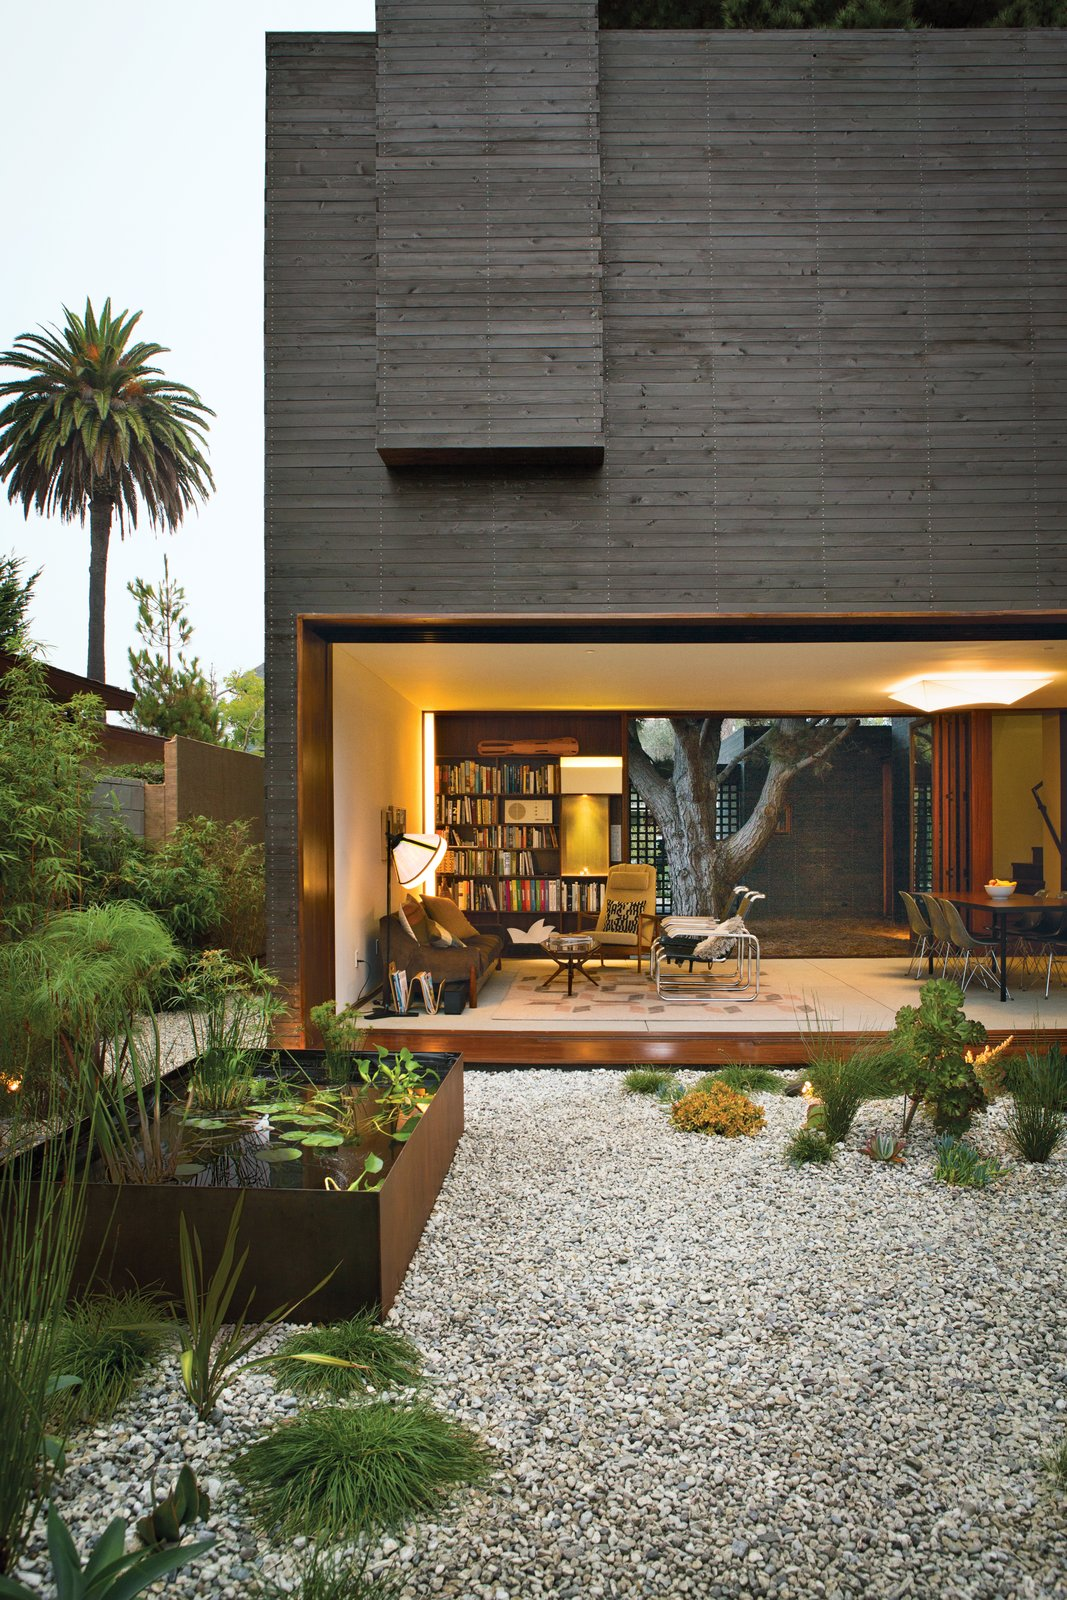 Outdoor, Gardens, Back Yard, Trees, Walkways, Hardscapes, and Garden Architectural designer Sebastian Mariscal and project manager Jeff Svitak created a house in Venice, California, for Michael and Tamami Sylvester. Known as Dwell Home Venice for its role as an exemplification of modern architecture, the house is an homage to indoor-outdoor living. Photo by Coral von Zumwalt.  Photo 1 of 7 in Sebastian Mariscal's Wood Architecture from A Modern Bungalow in Venice Beach